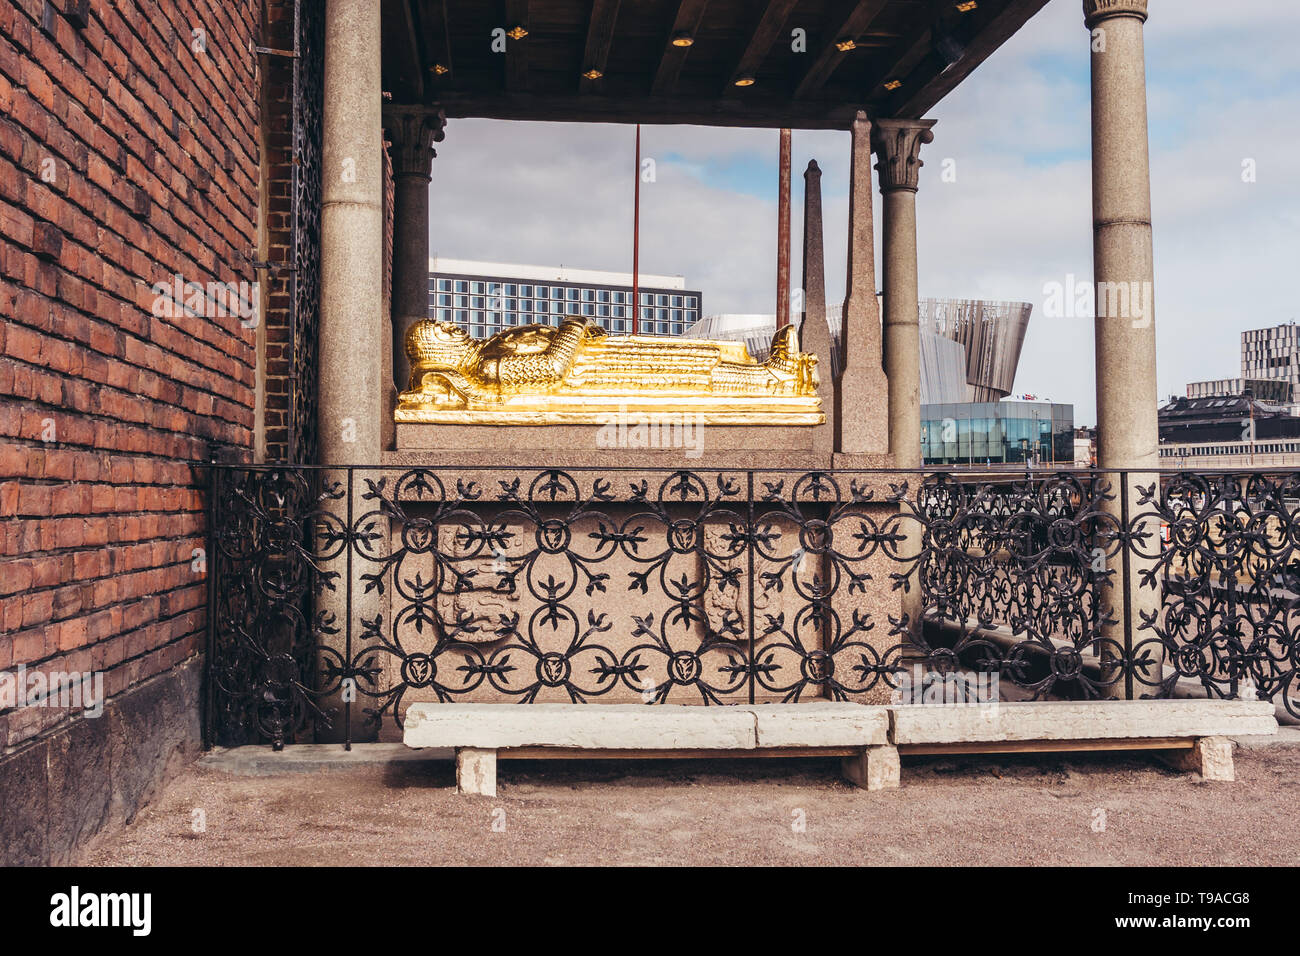 Editorial 03.27.2019 Stockholm Sweden Tomb of Birger Jarl, founder of the city, at the City Hall of Stockholm - Stock Image